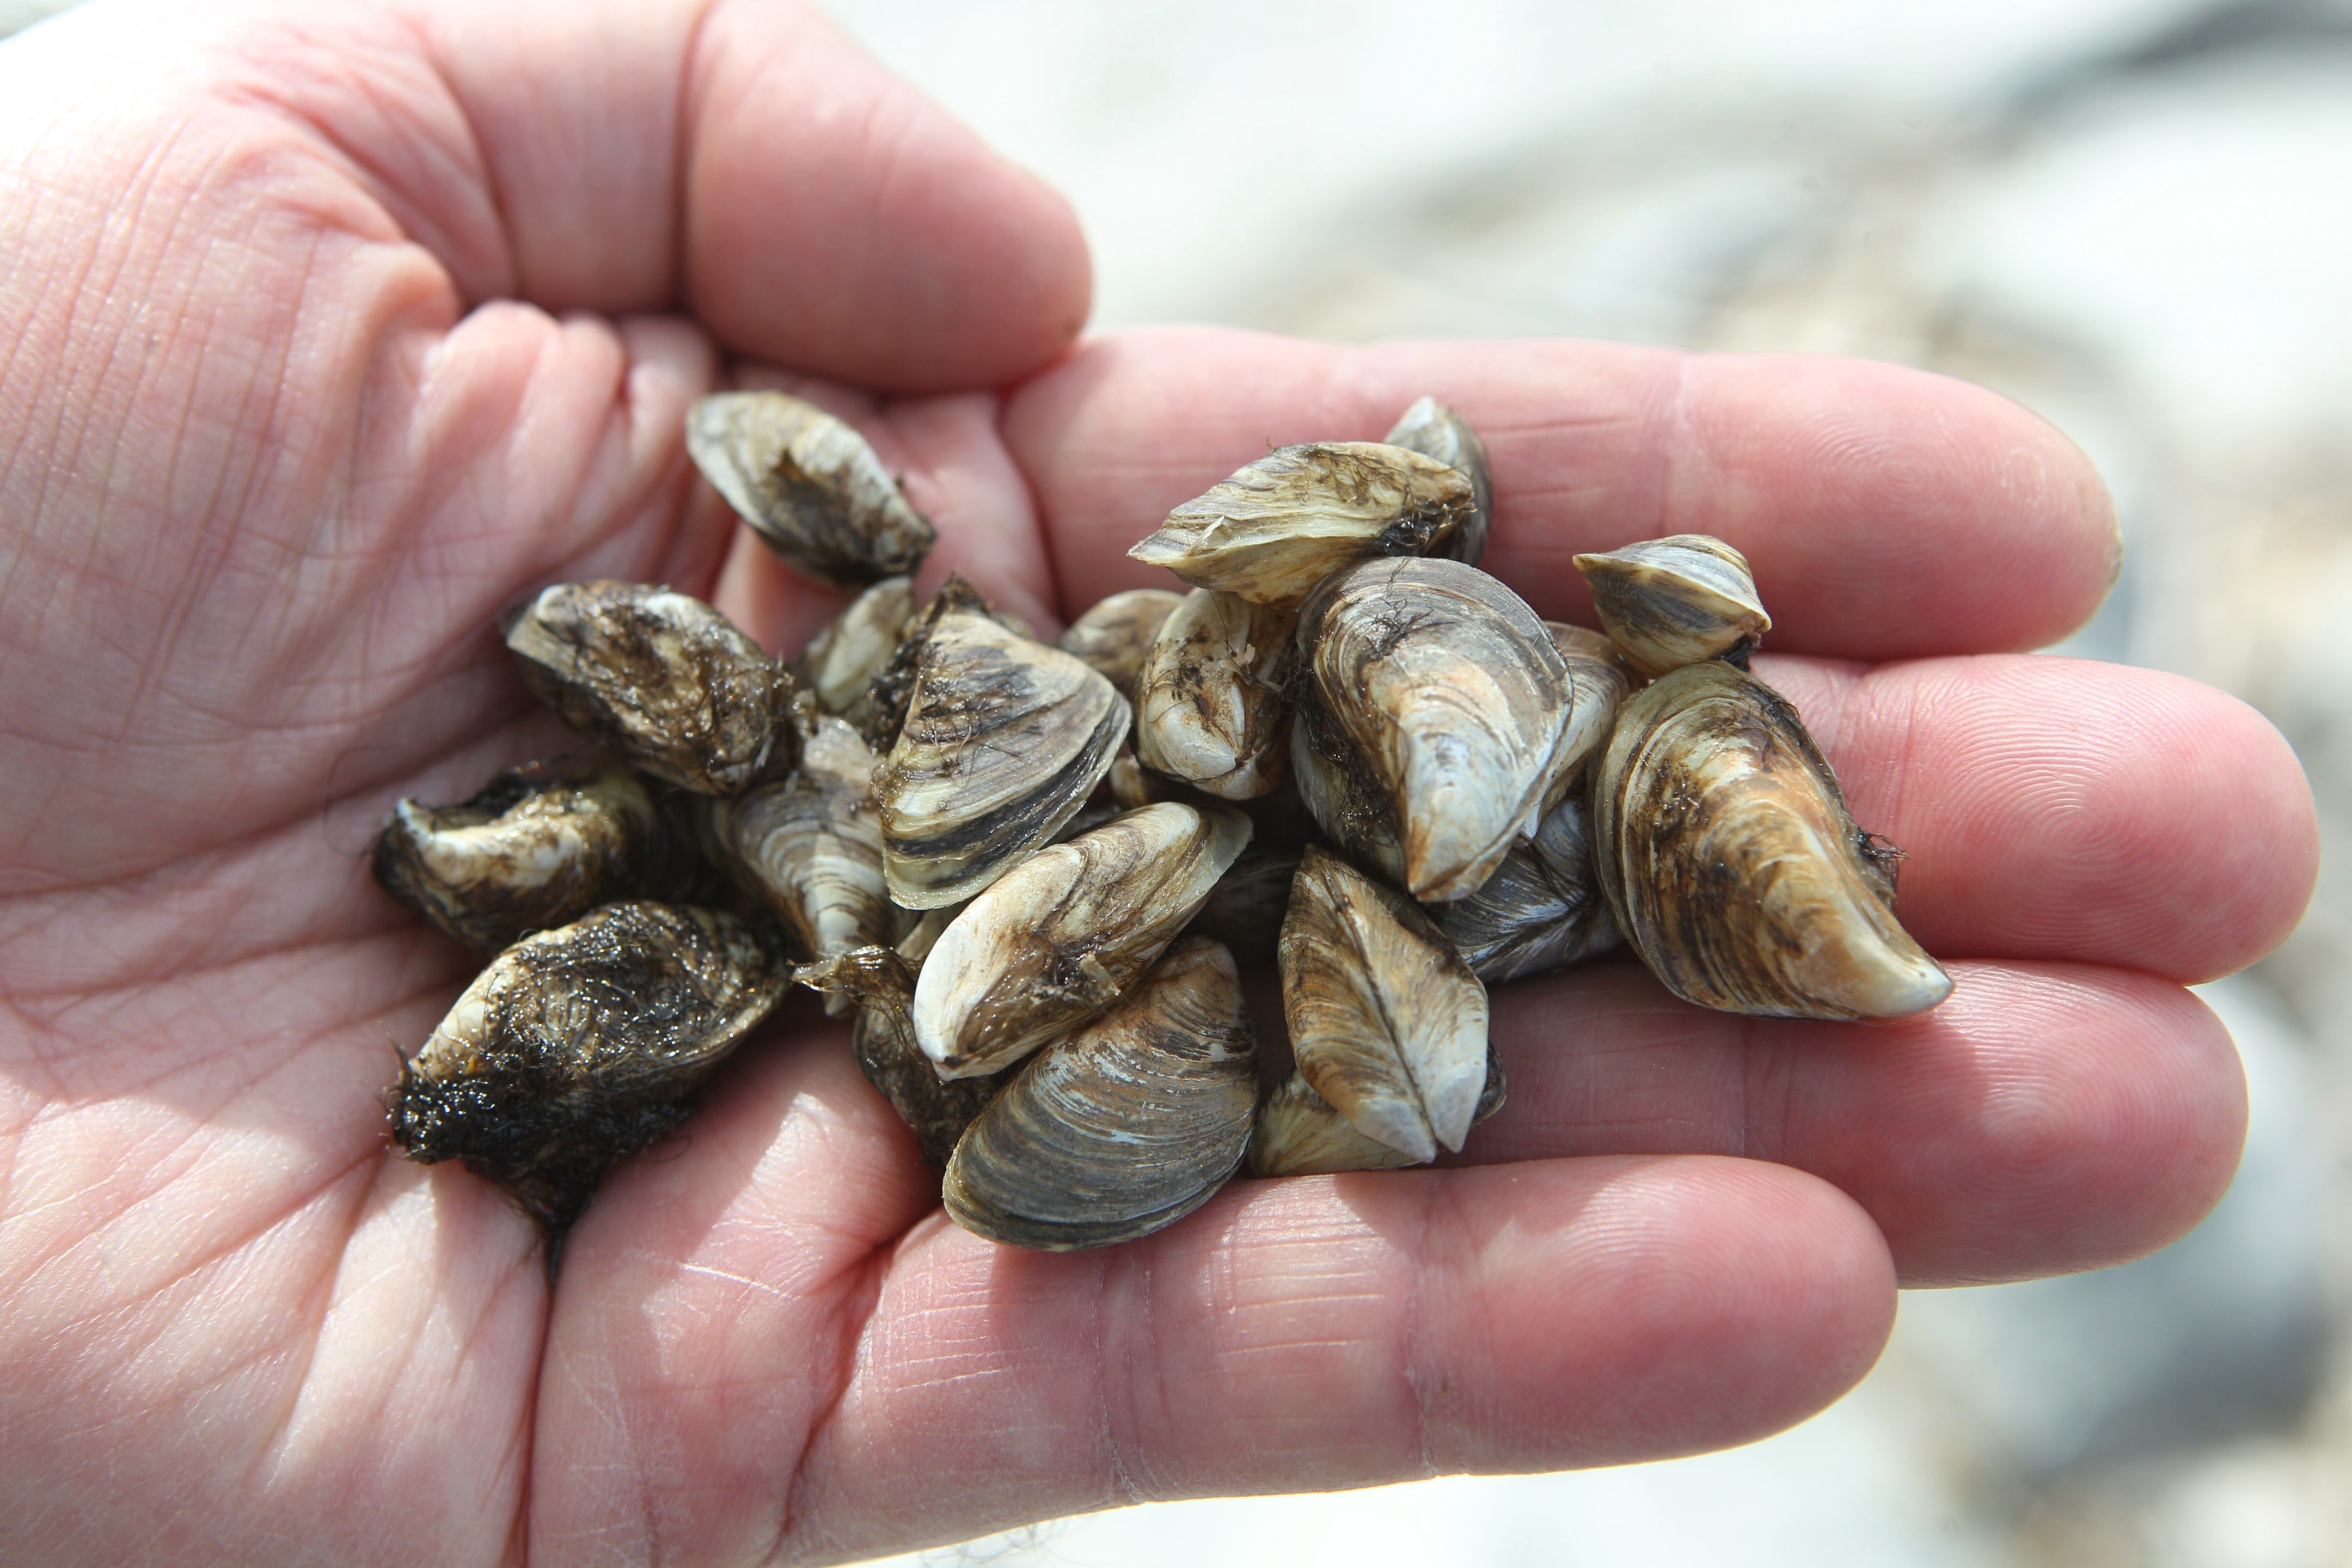 The quagga mussel, like these shown here, and the zebra mussel have wreaked havoc on the Great Lakes ecosystem ever since they were introduced to the area in the 1980s.